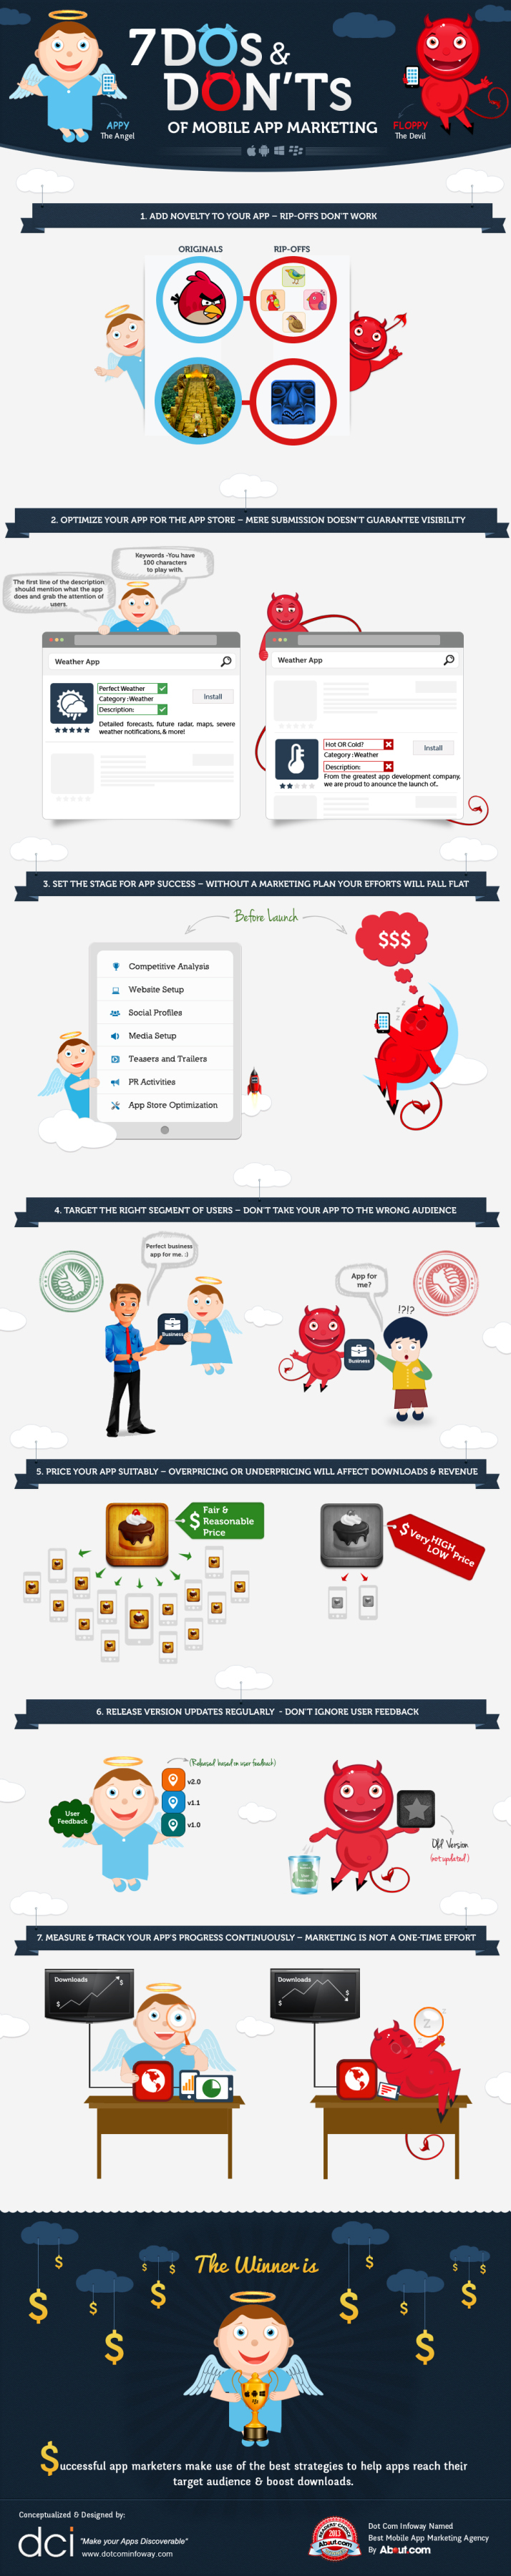 infografia-marketing-apps